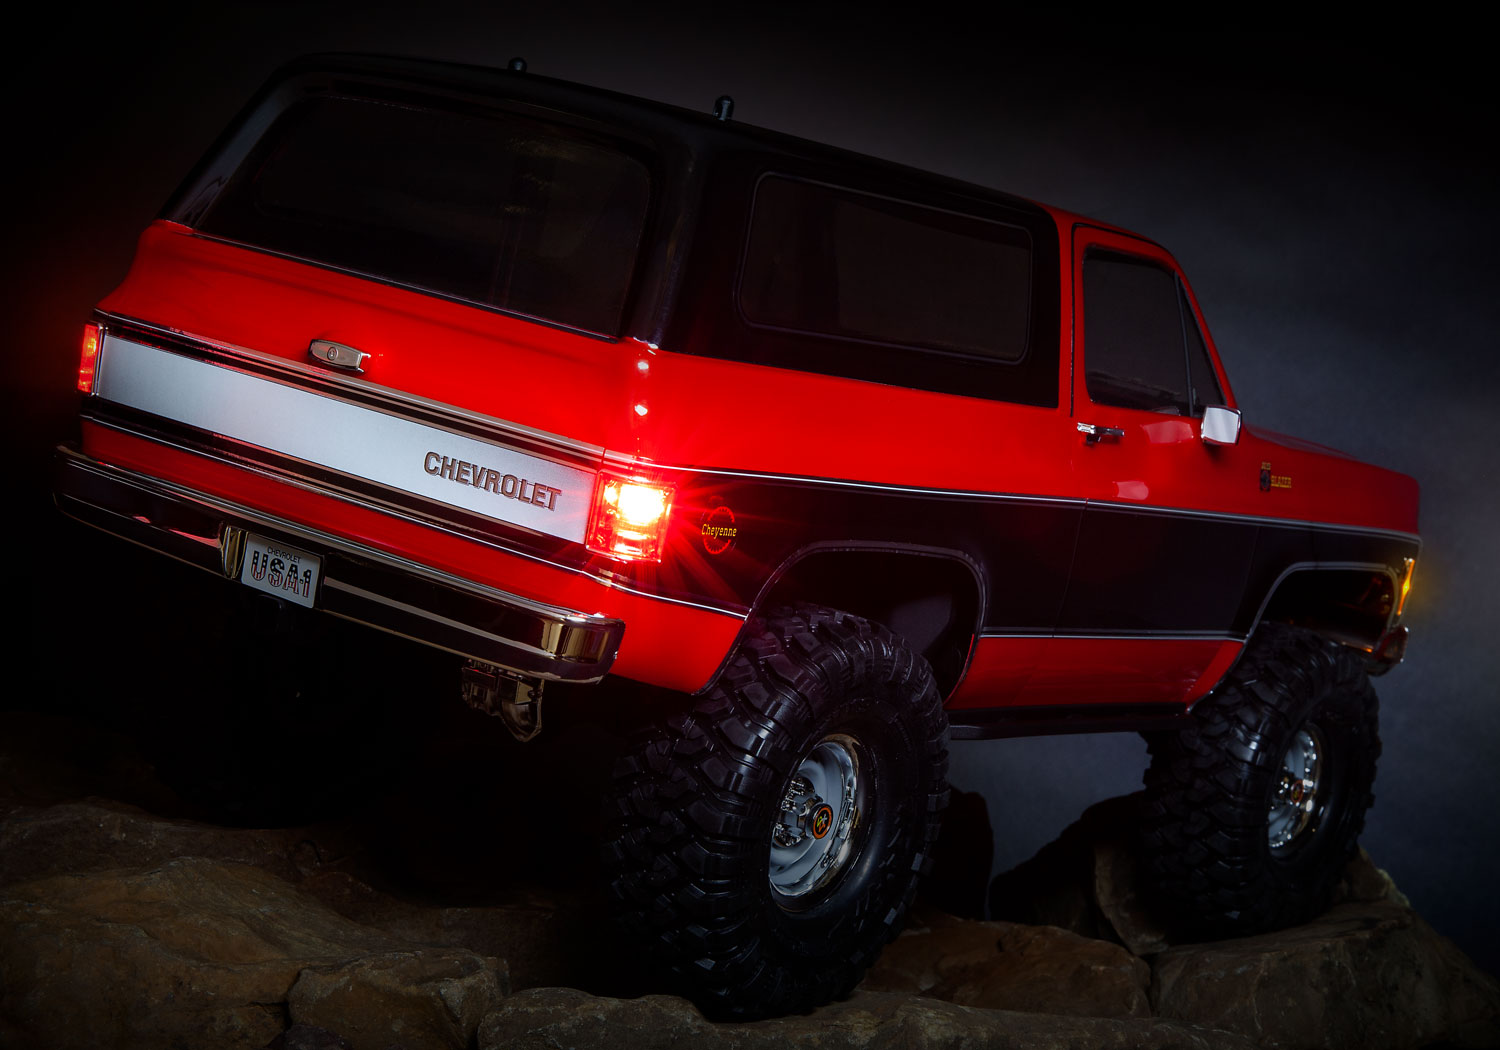 Traxxas TRX-4 Blazer | Scale and Trail Crawler | 4x4 RC Truck